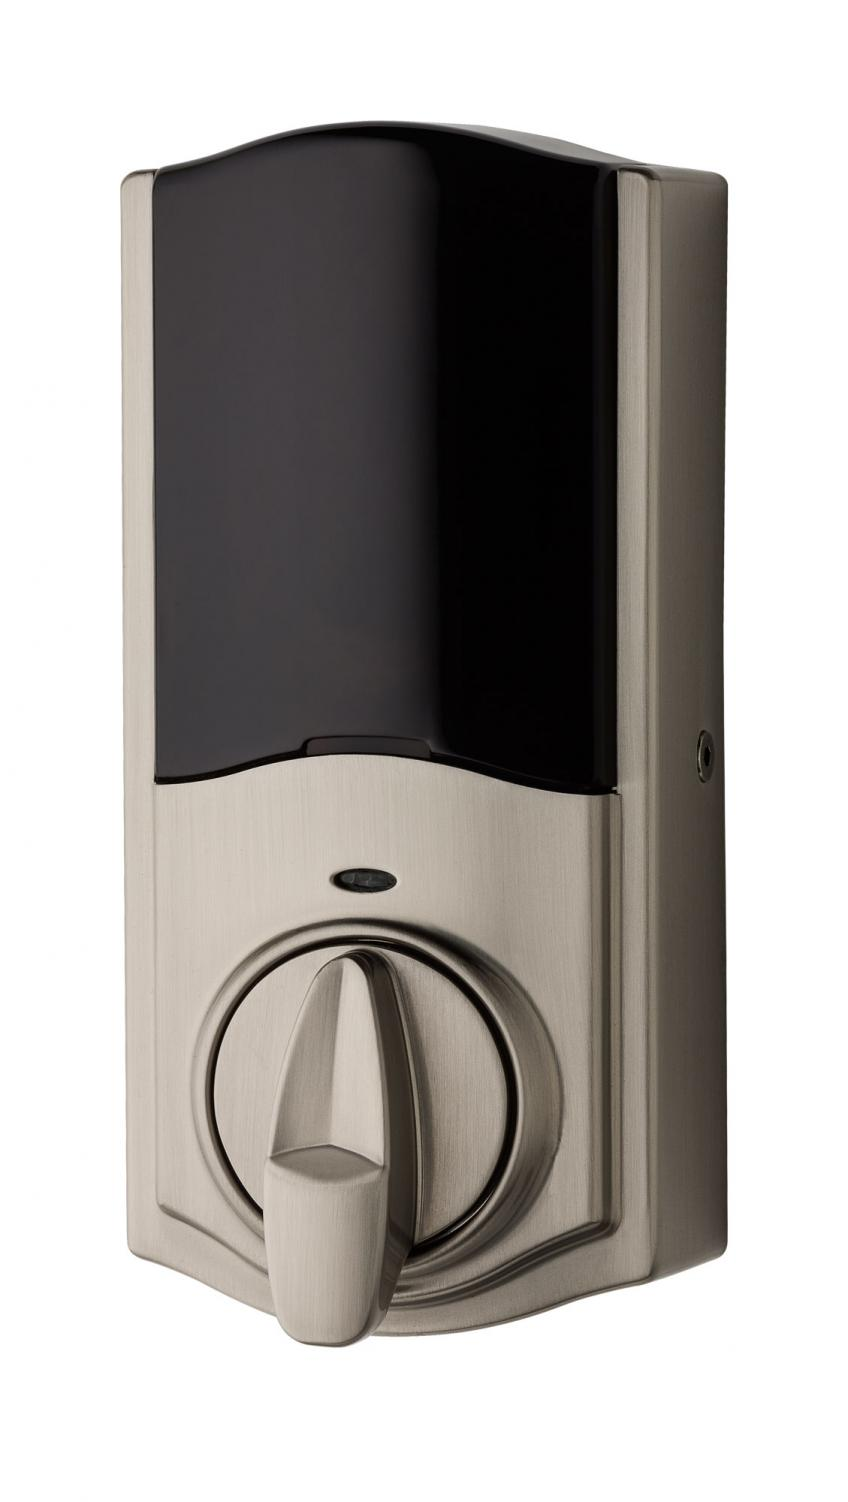 Kwikset Kevo Convert Residential Products Online